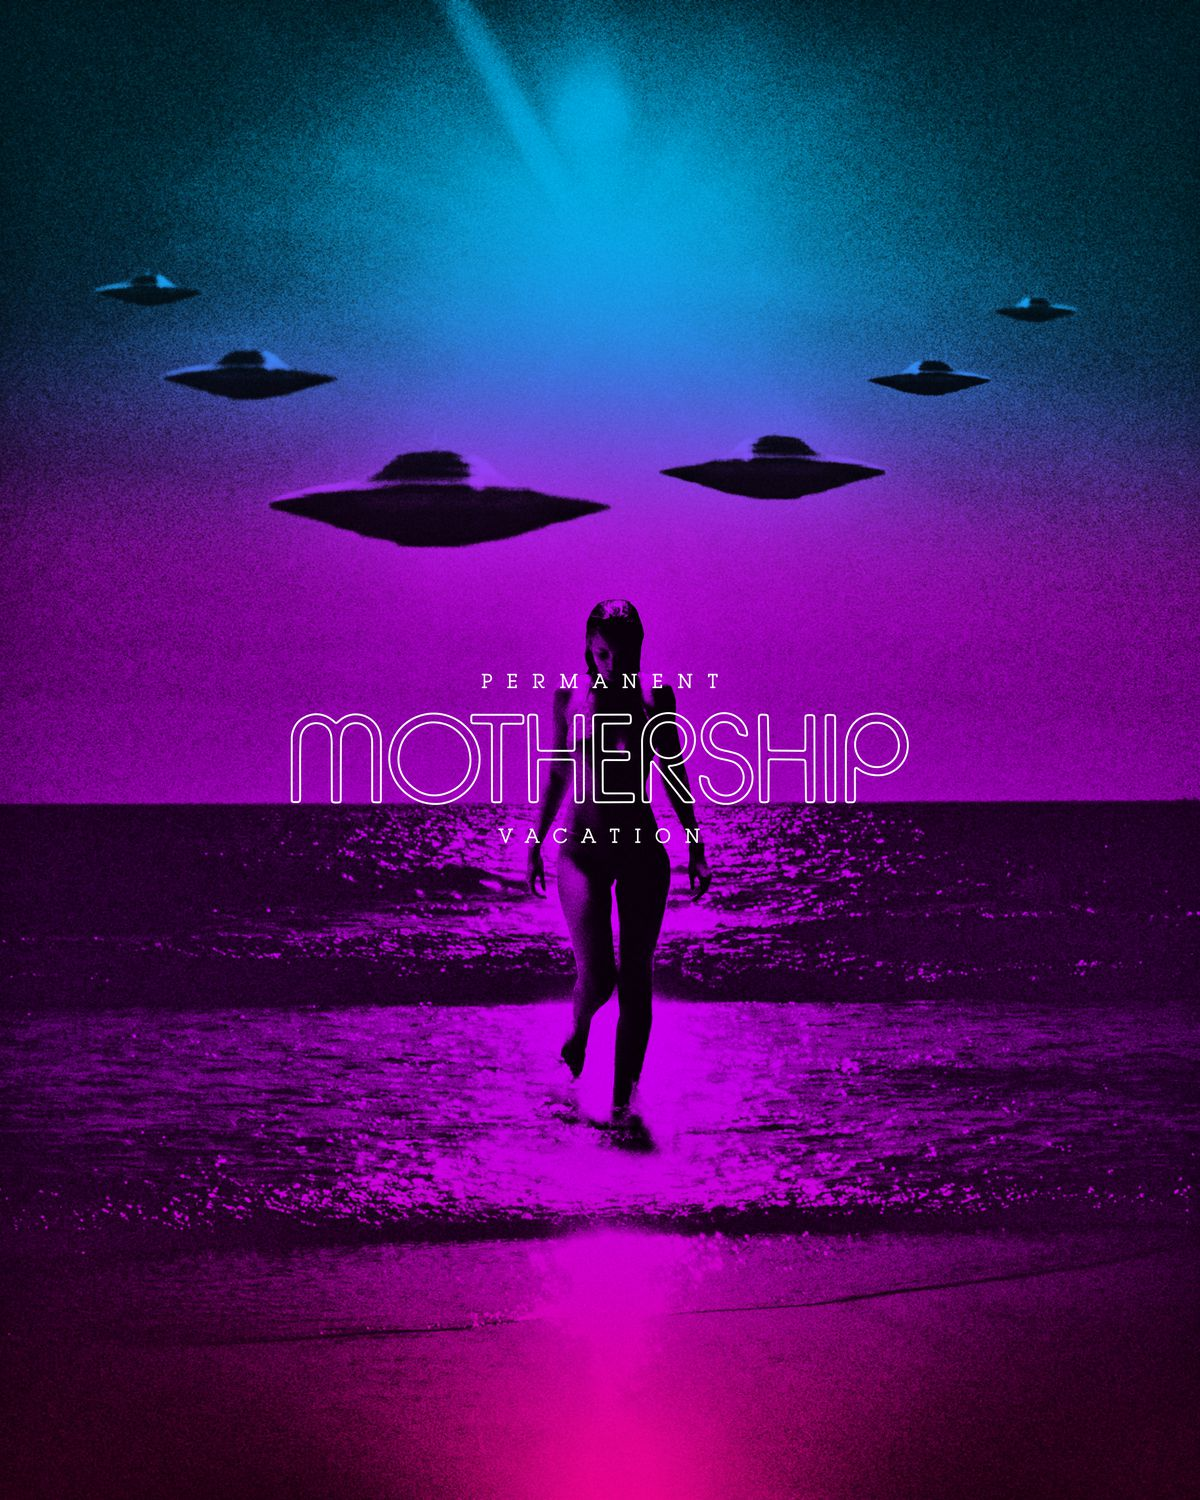 Graphic showing a women coming out of the ocean with spaceships in the background from Mothership